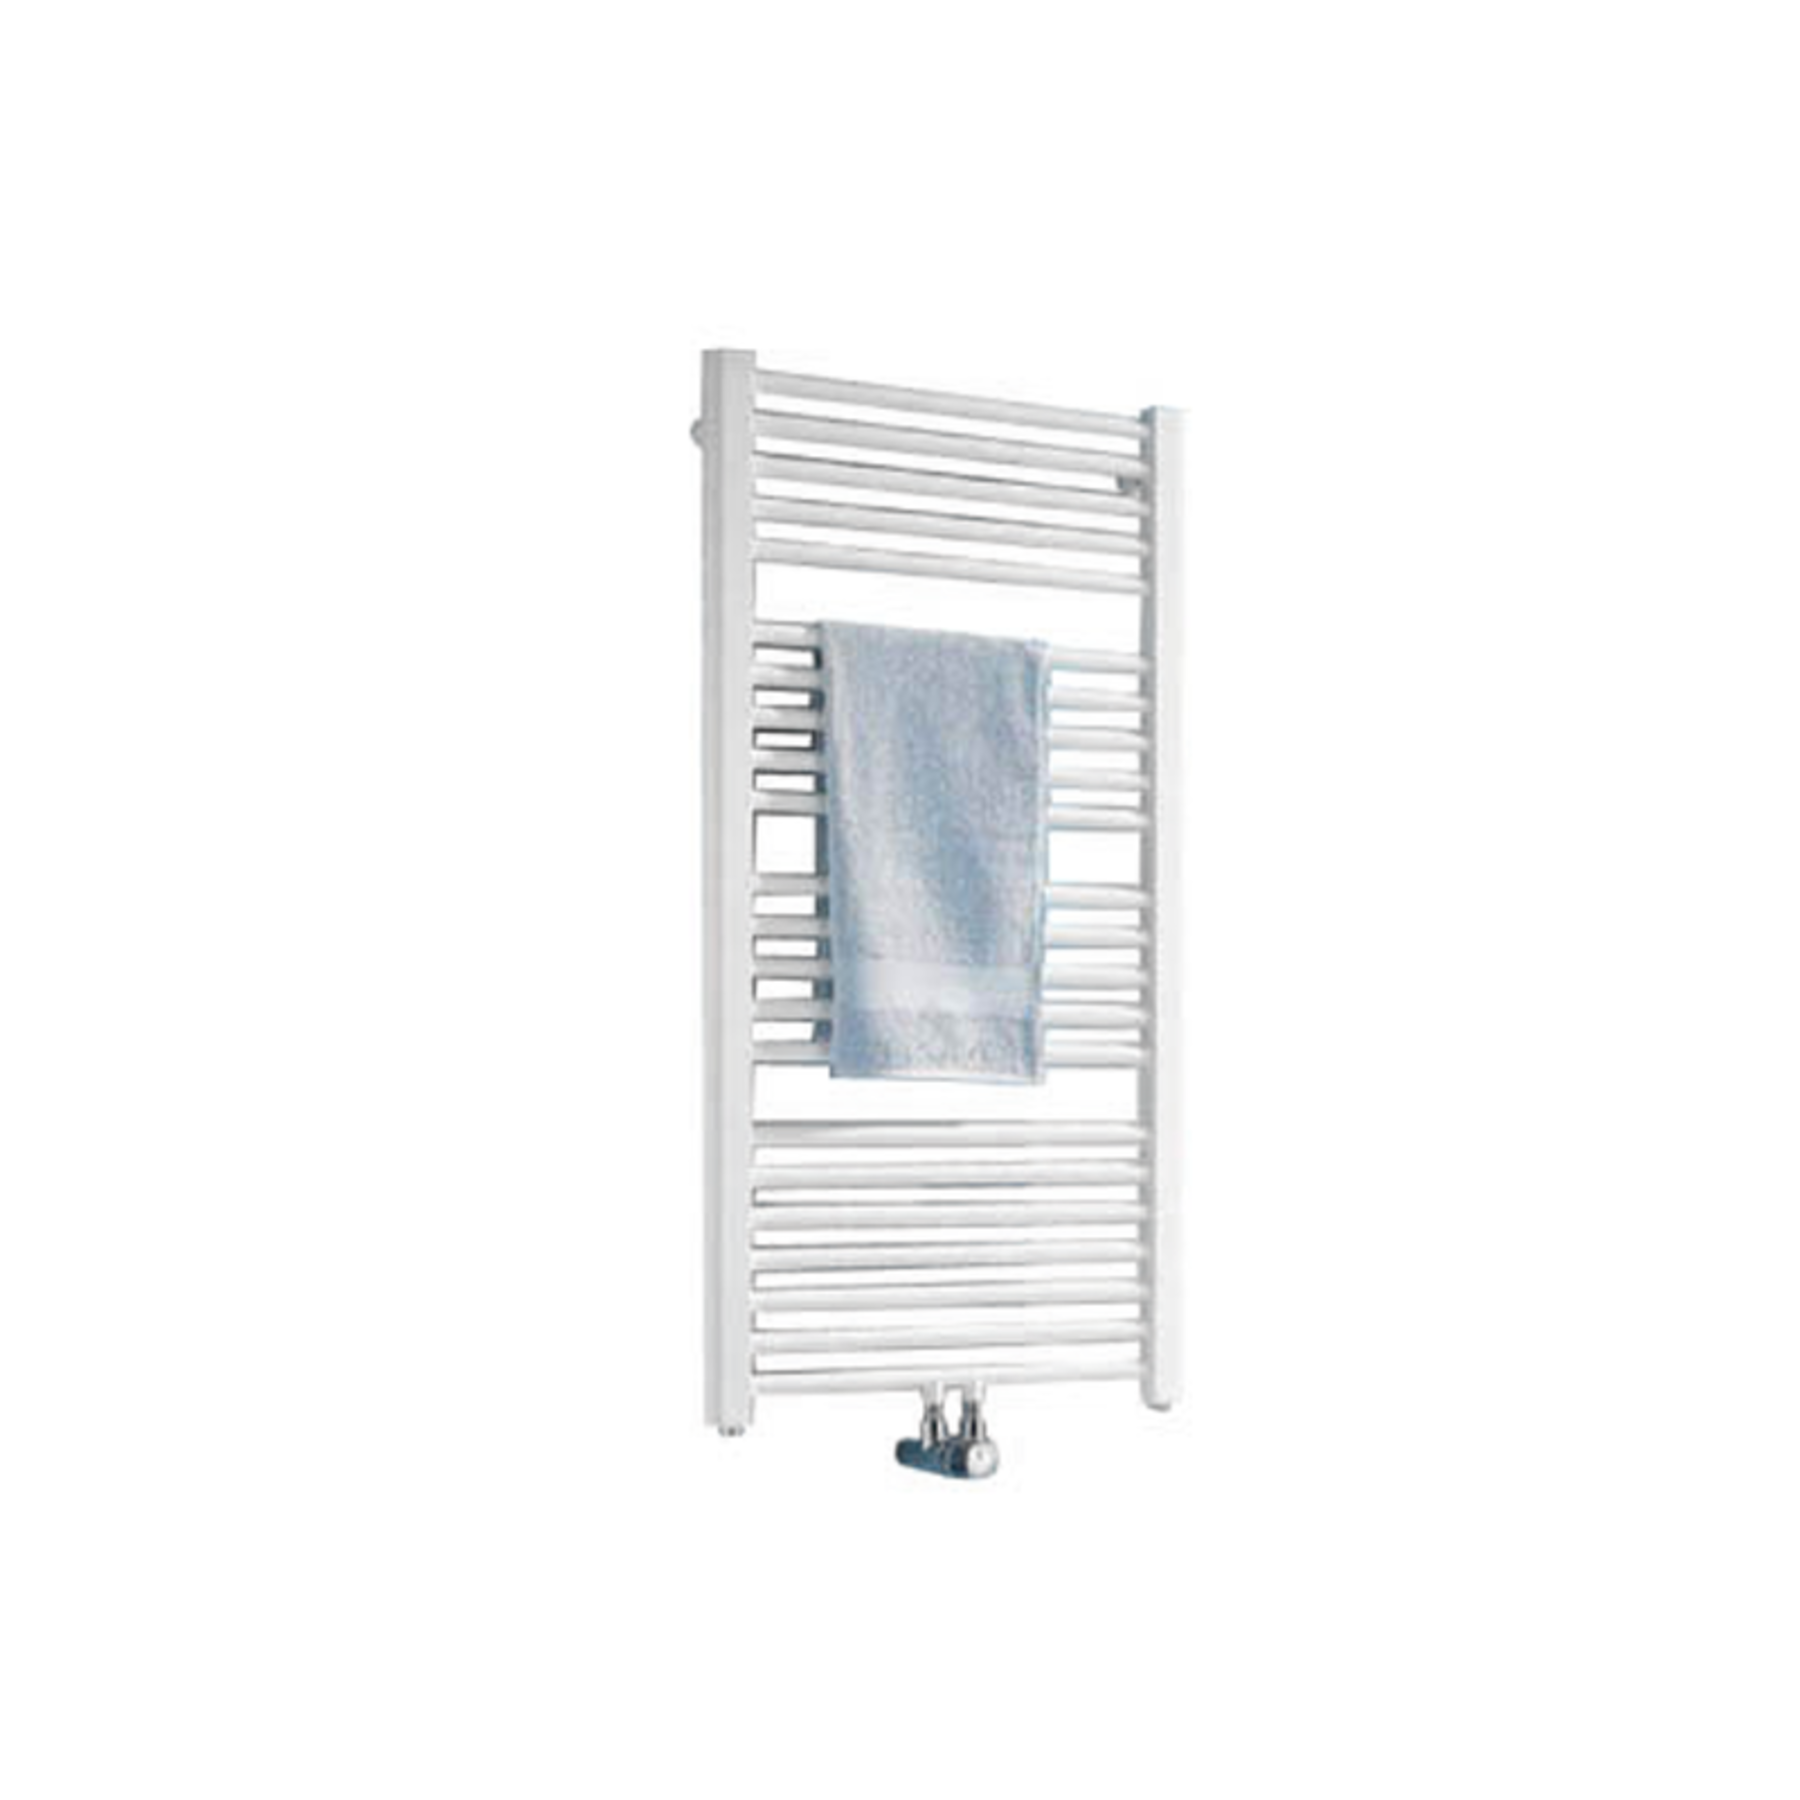 Kermi Basic 50 designradiator horizontaal 1770x599mm 1022 watt wit